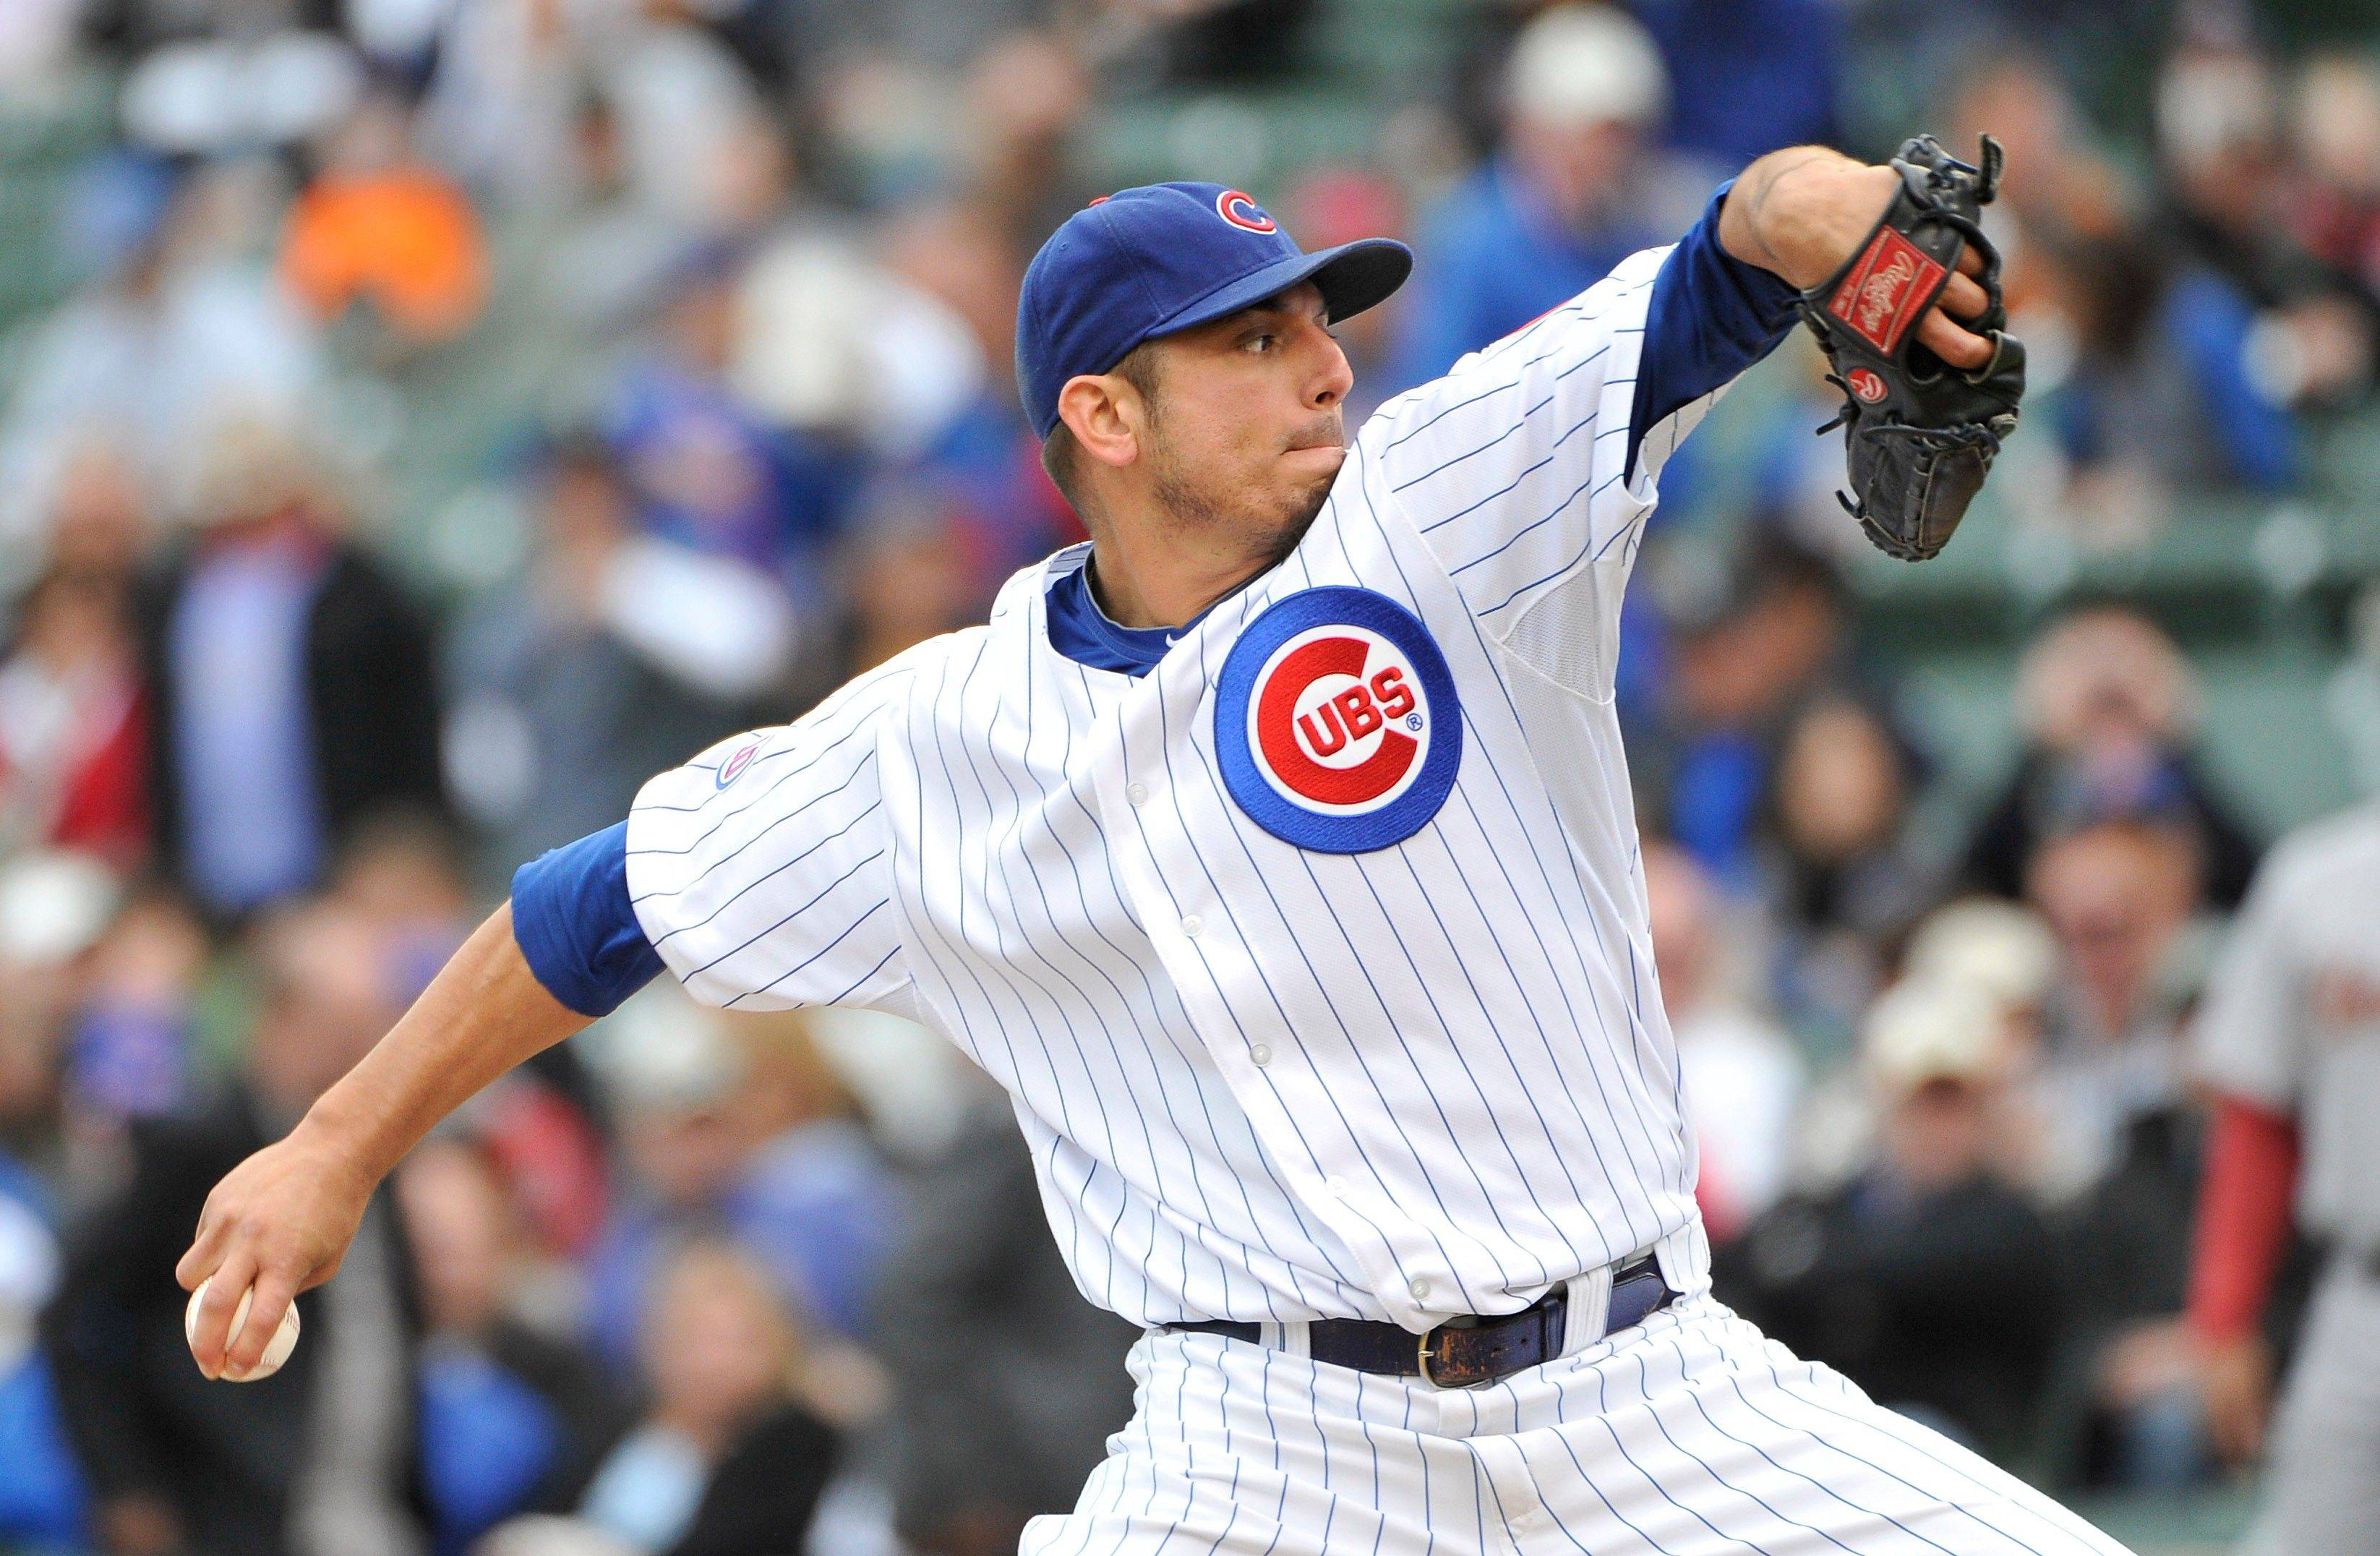 Matt Garza has been the Cubs' most effective starter this season, with an ERA of 3.51 to go with a hard-luck record of 8-10. Depending on what happens in the off-season, Garza could go into next spring with the inside track to being the Cubs' opening-day starter and ace.